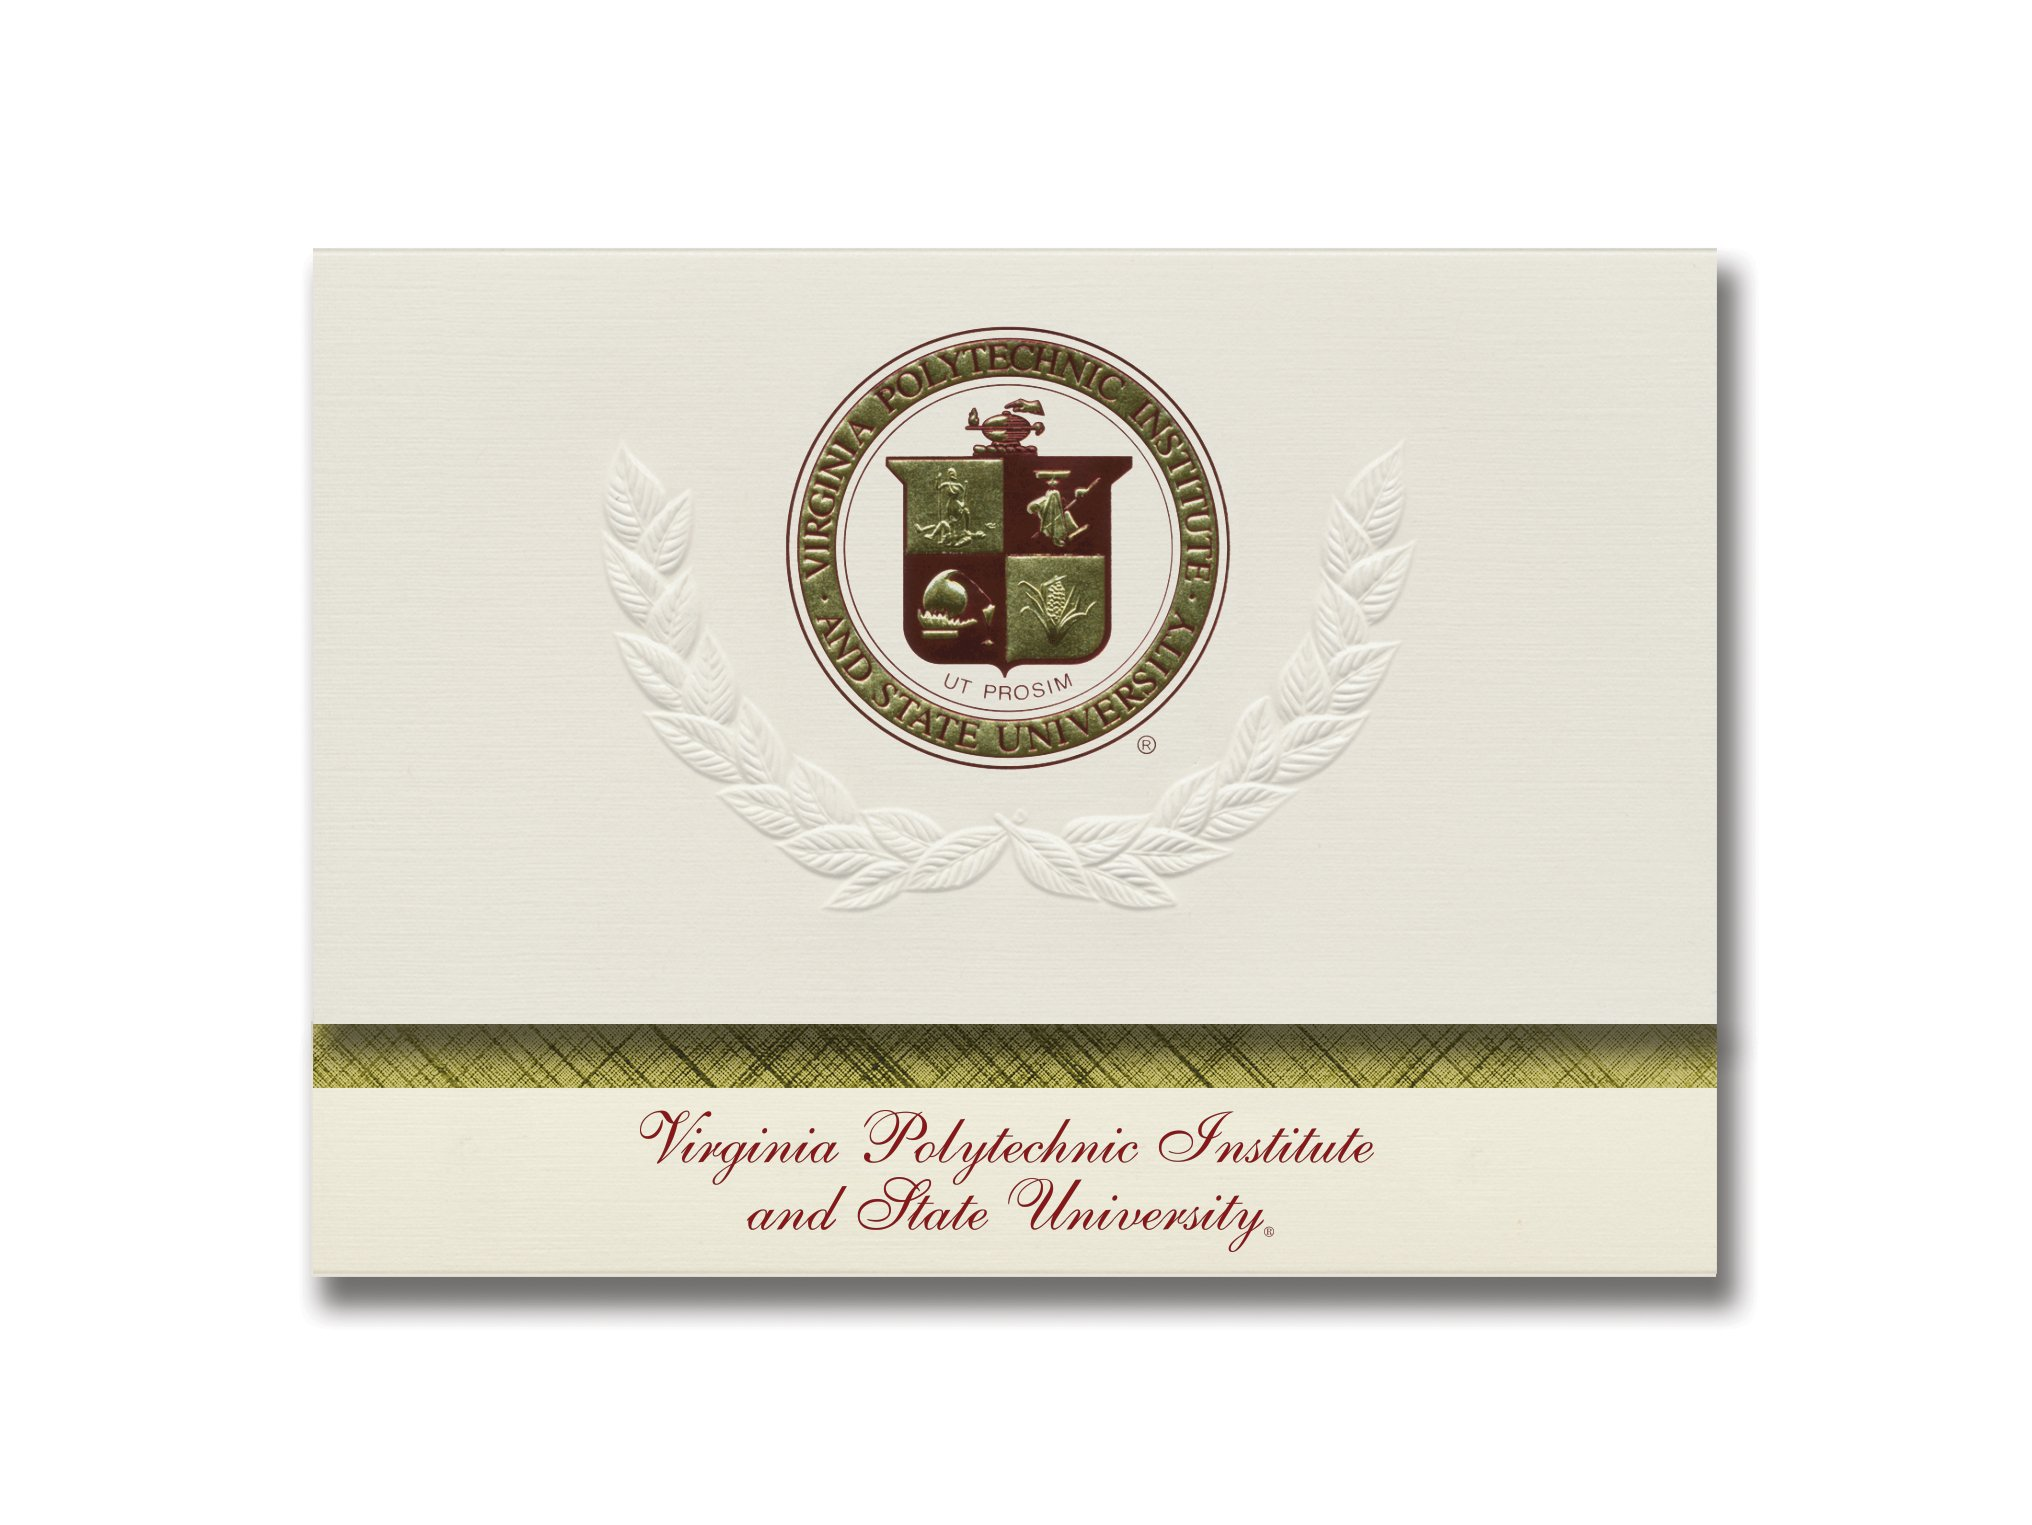 Signature Announcements Virginia Polytechnic Institute and State University Graduation Announcements, Platinum style, Elite Pack 20 with Virginia Tech Seal Foil